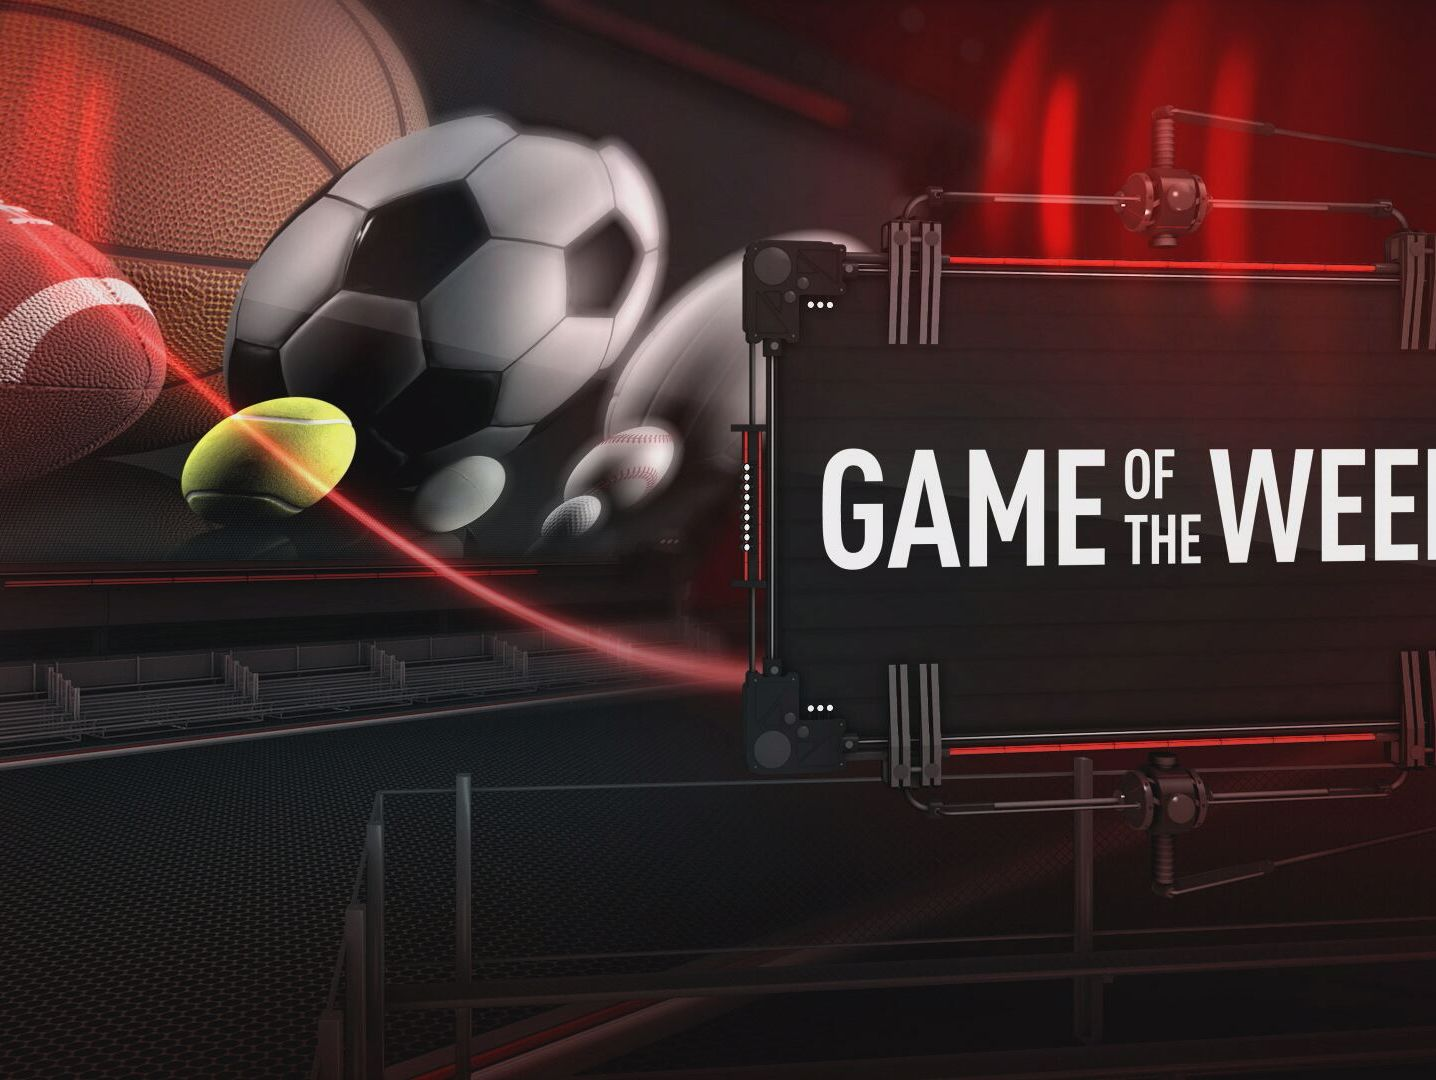 Game of the Week graphic